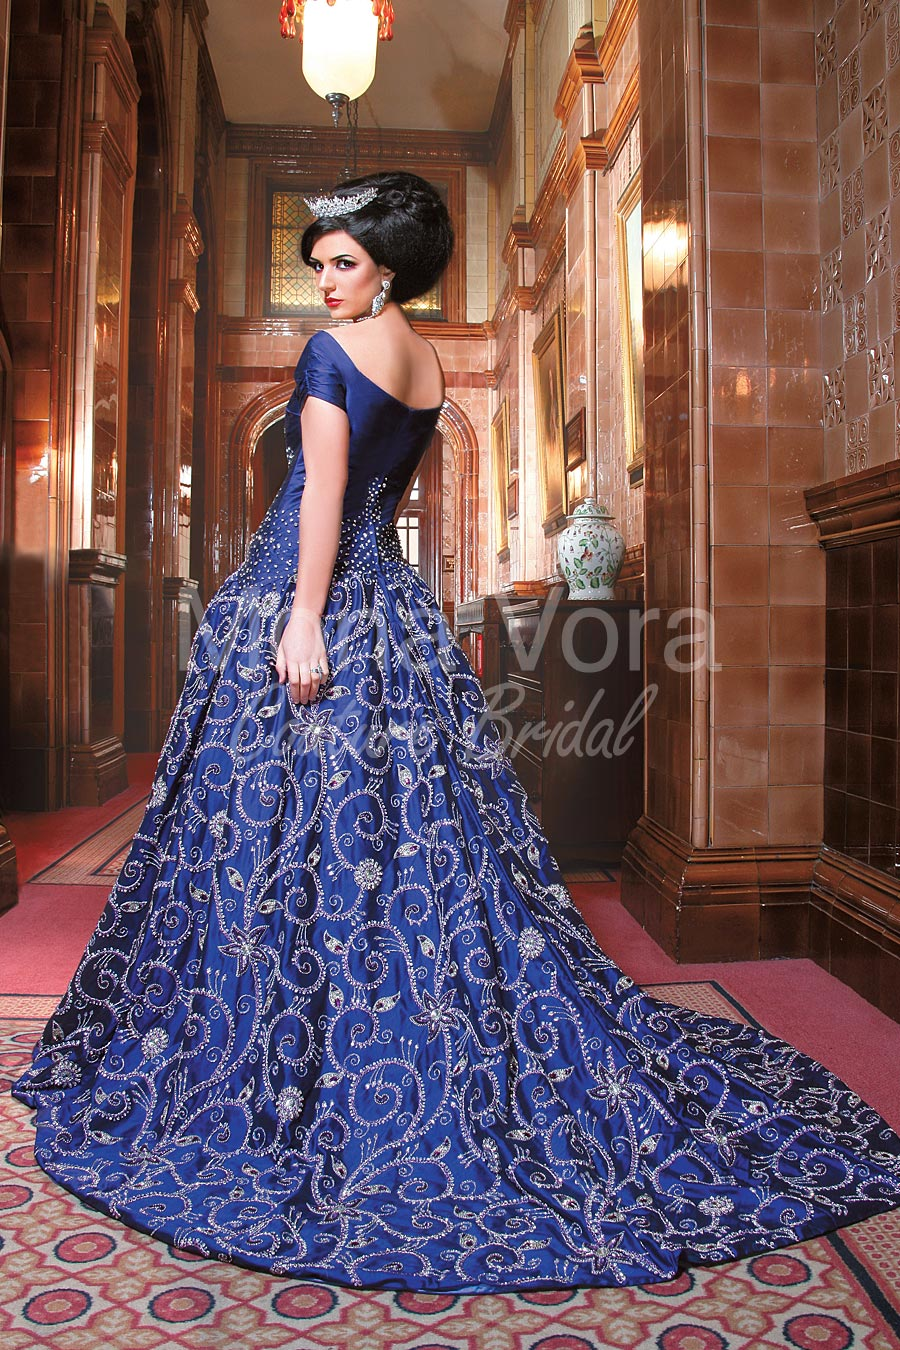 Buy Different Vibrant Colors Of Asian Wedding Dresses And Bridal